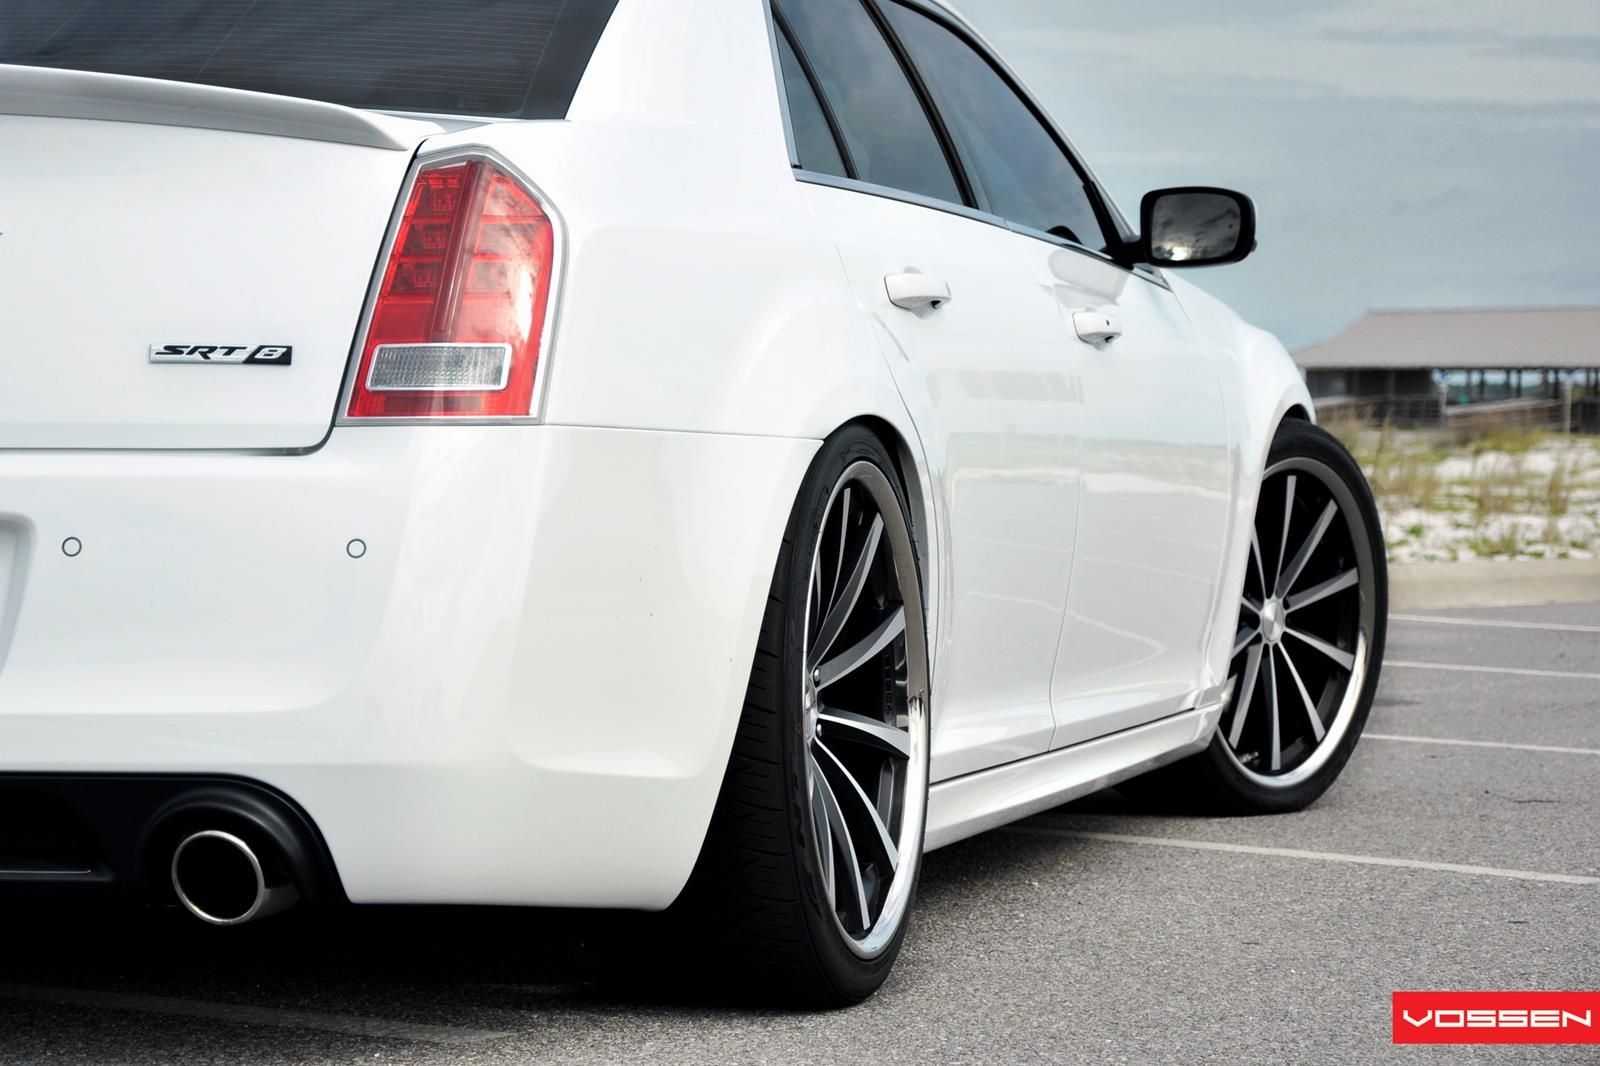 Chrysler_300c Srt8 Vossen_Wheels CV1 Stance Slammed